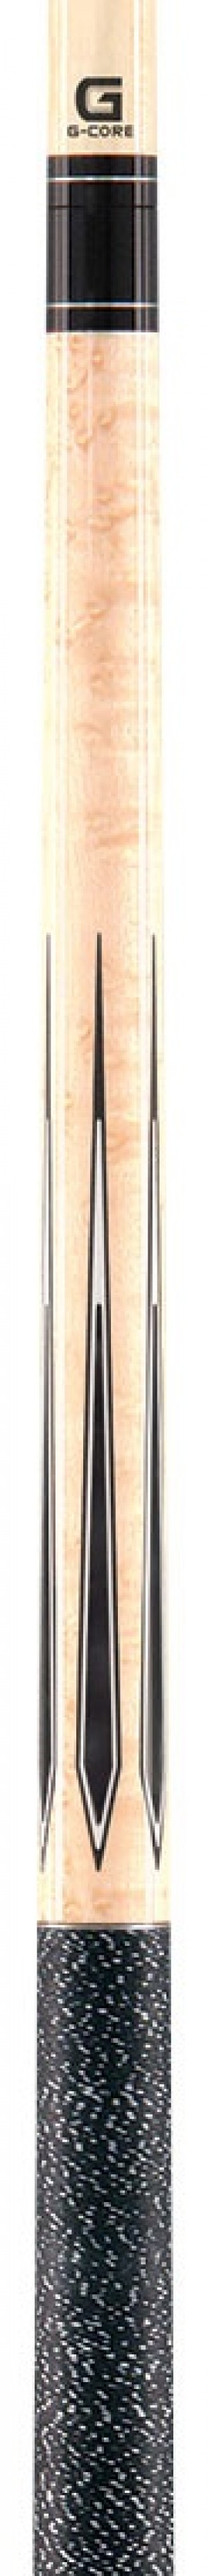 McDermott G-Series Cue G326